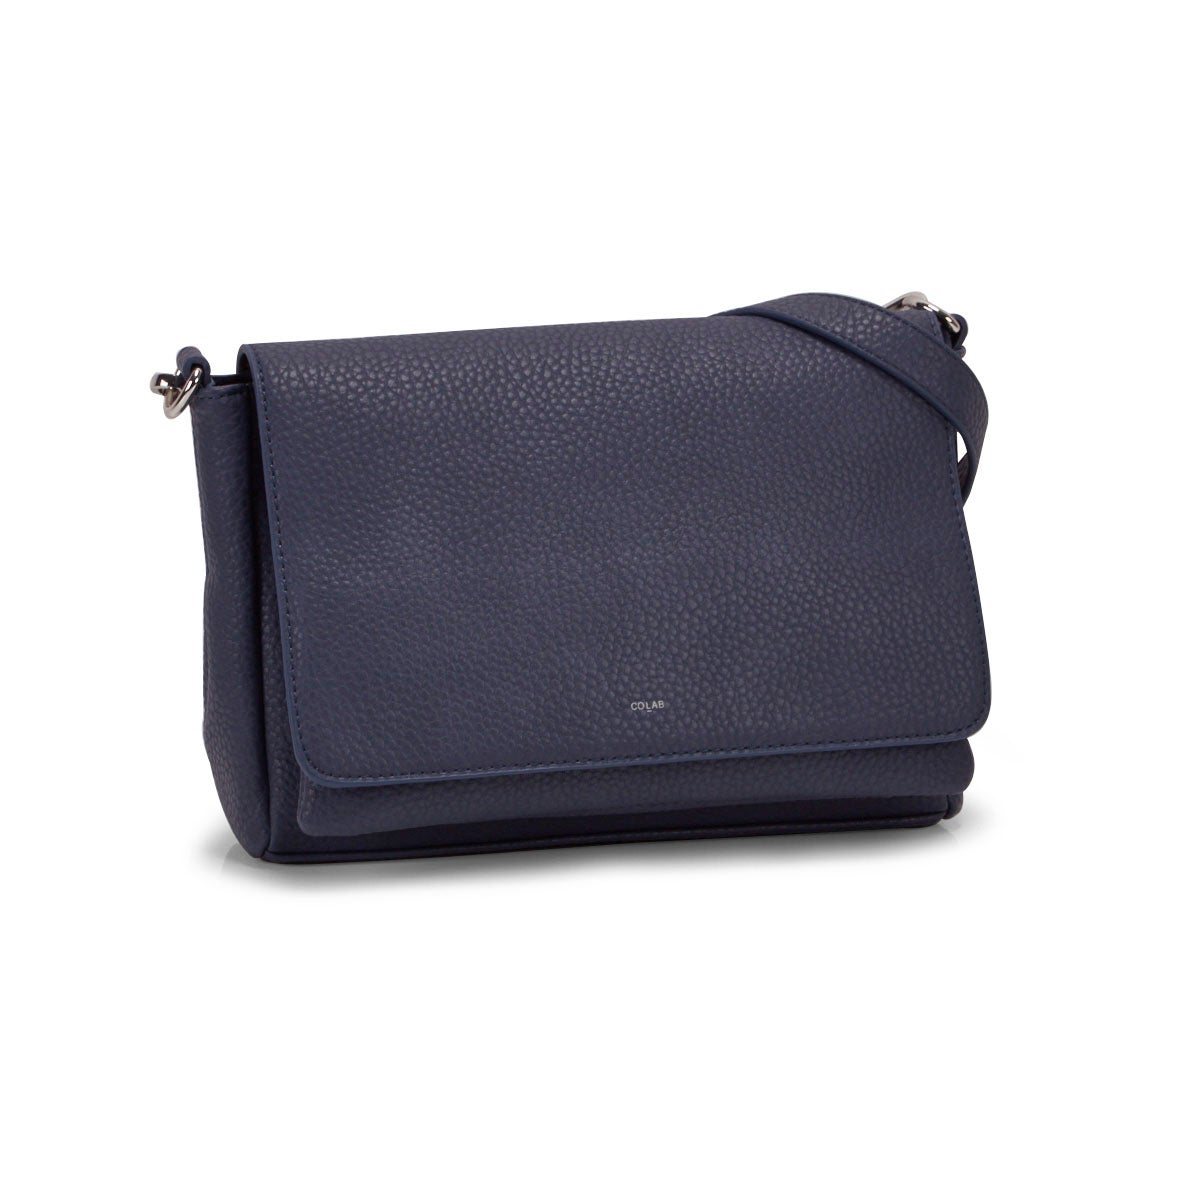 Sac messager band. denim fem.